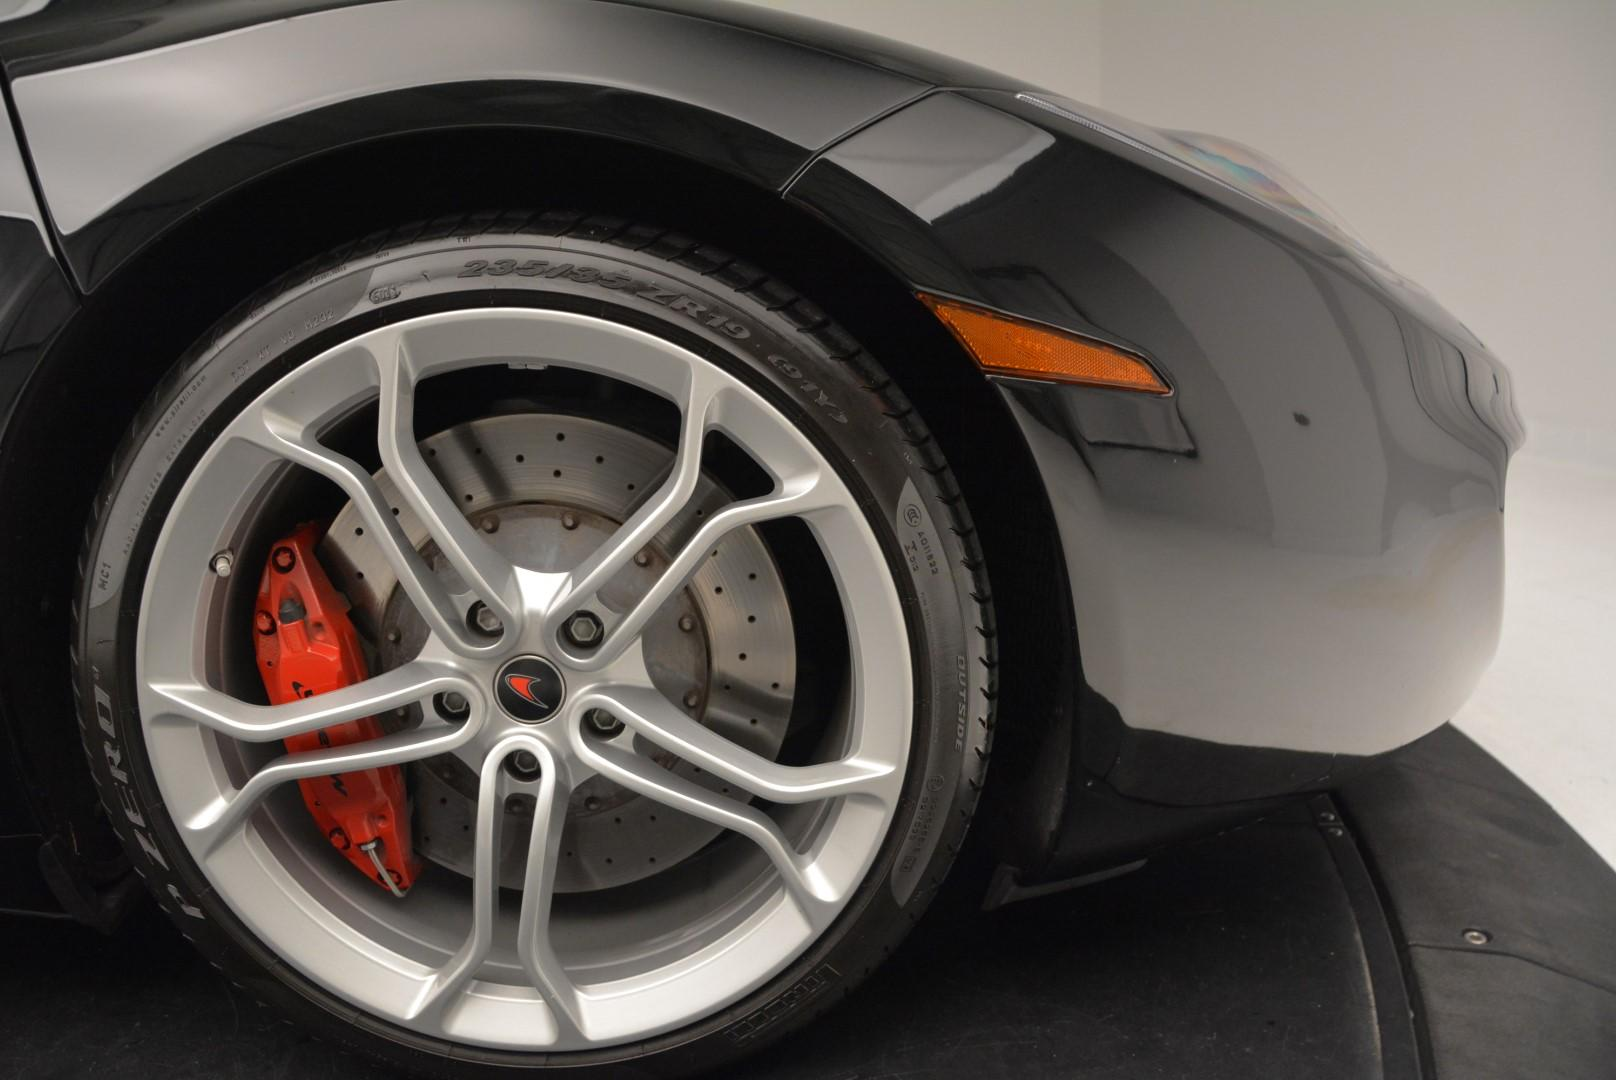 Used 2012 McLaren MP4-12c Coupe For Sale In Greenwich, CT. Alfa Romeo of Greenwich, 3155 70_p21